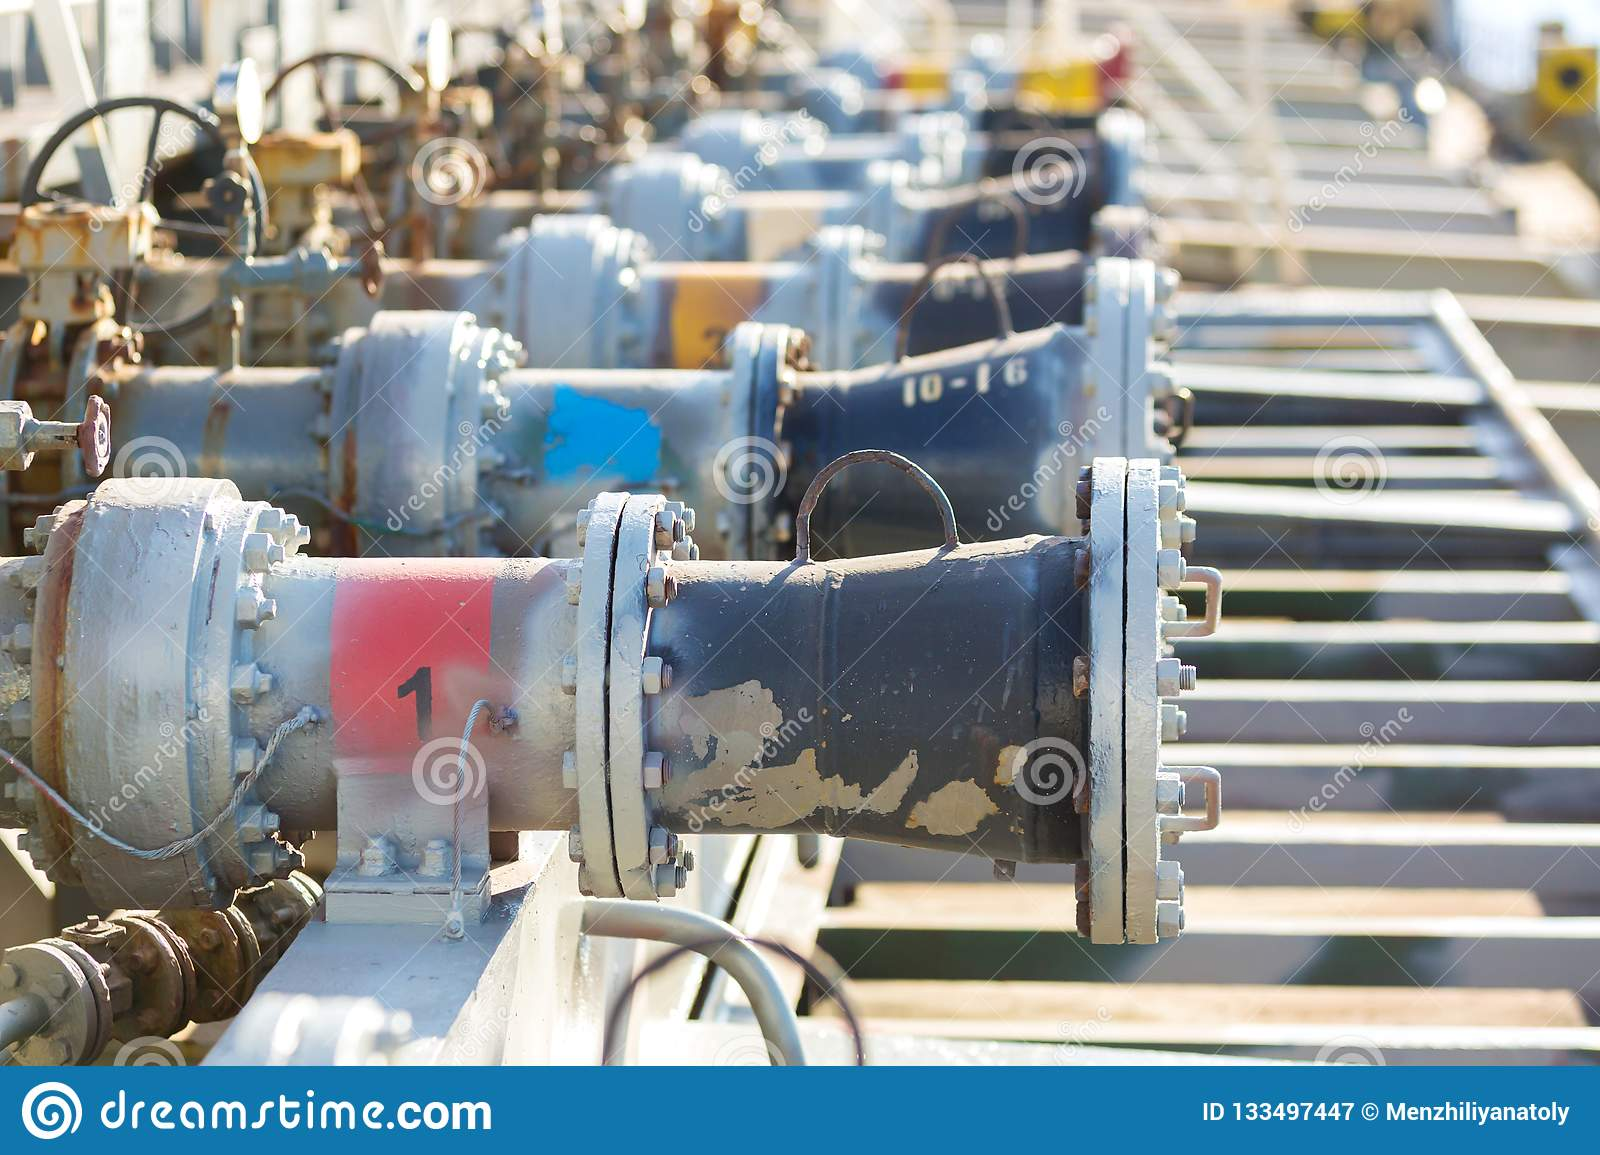 Cargo Manifolds Valves Of An Oil Product Tanker  Stock Image